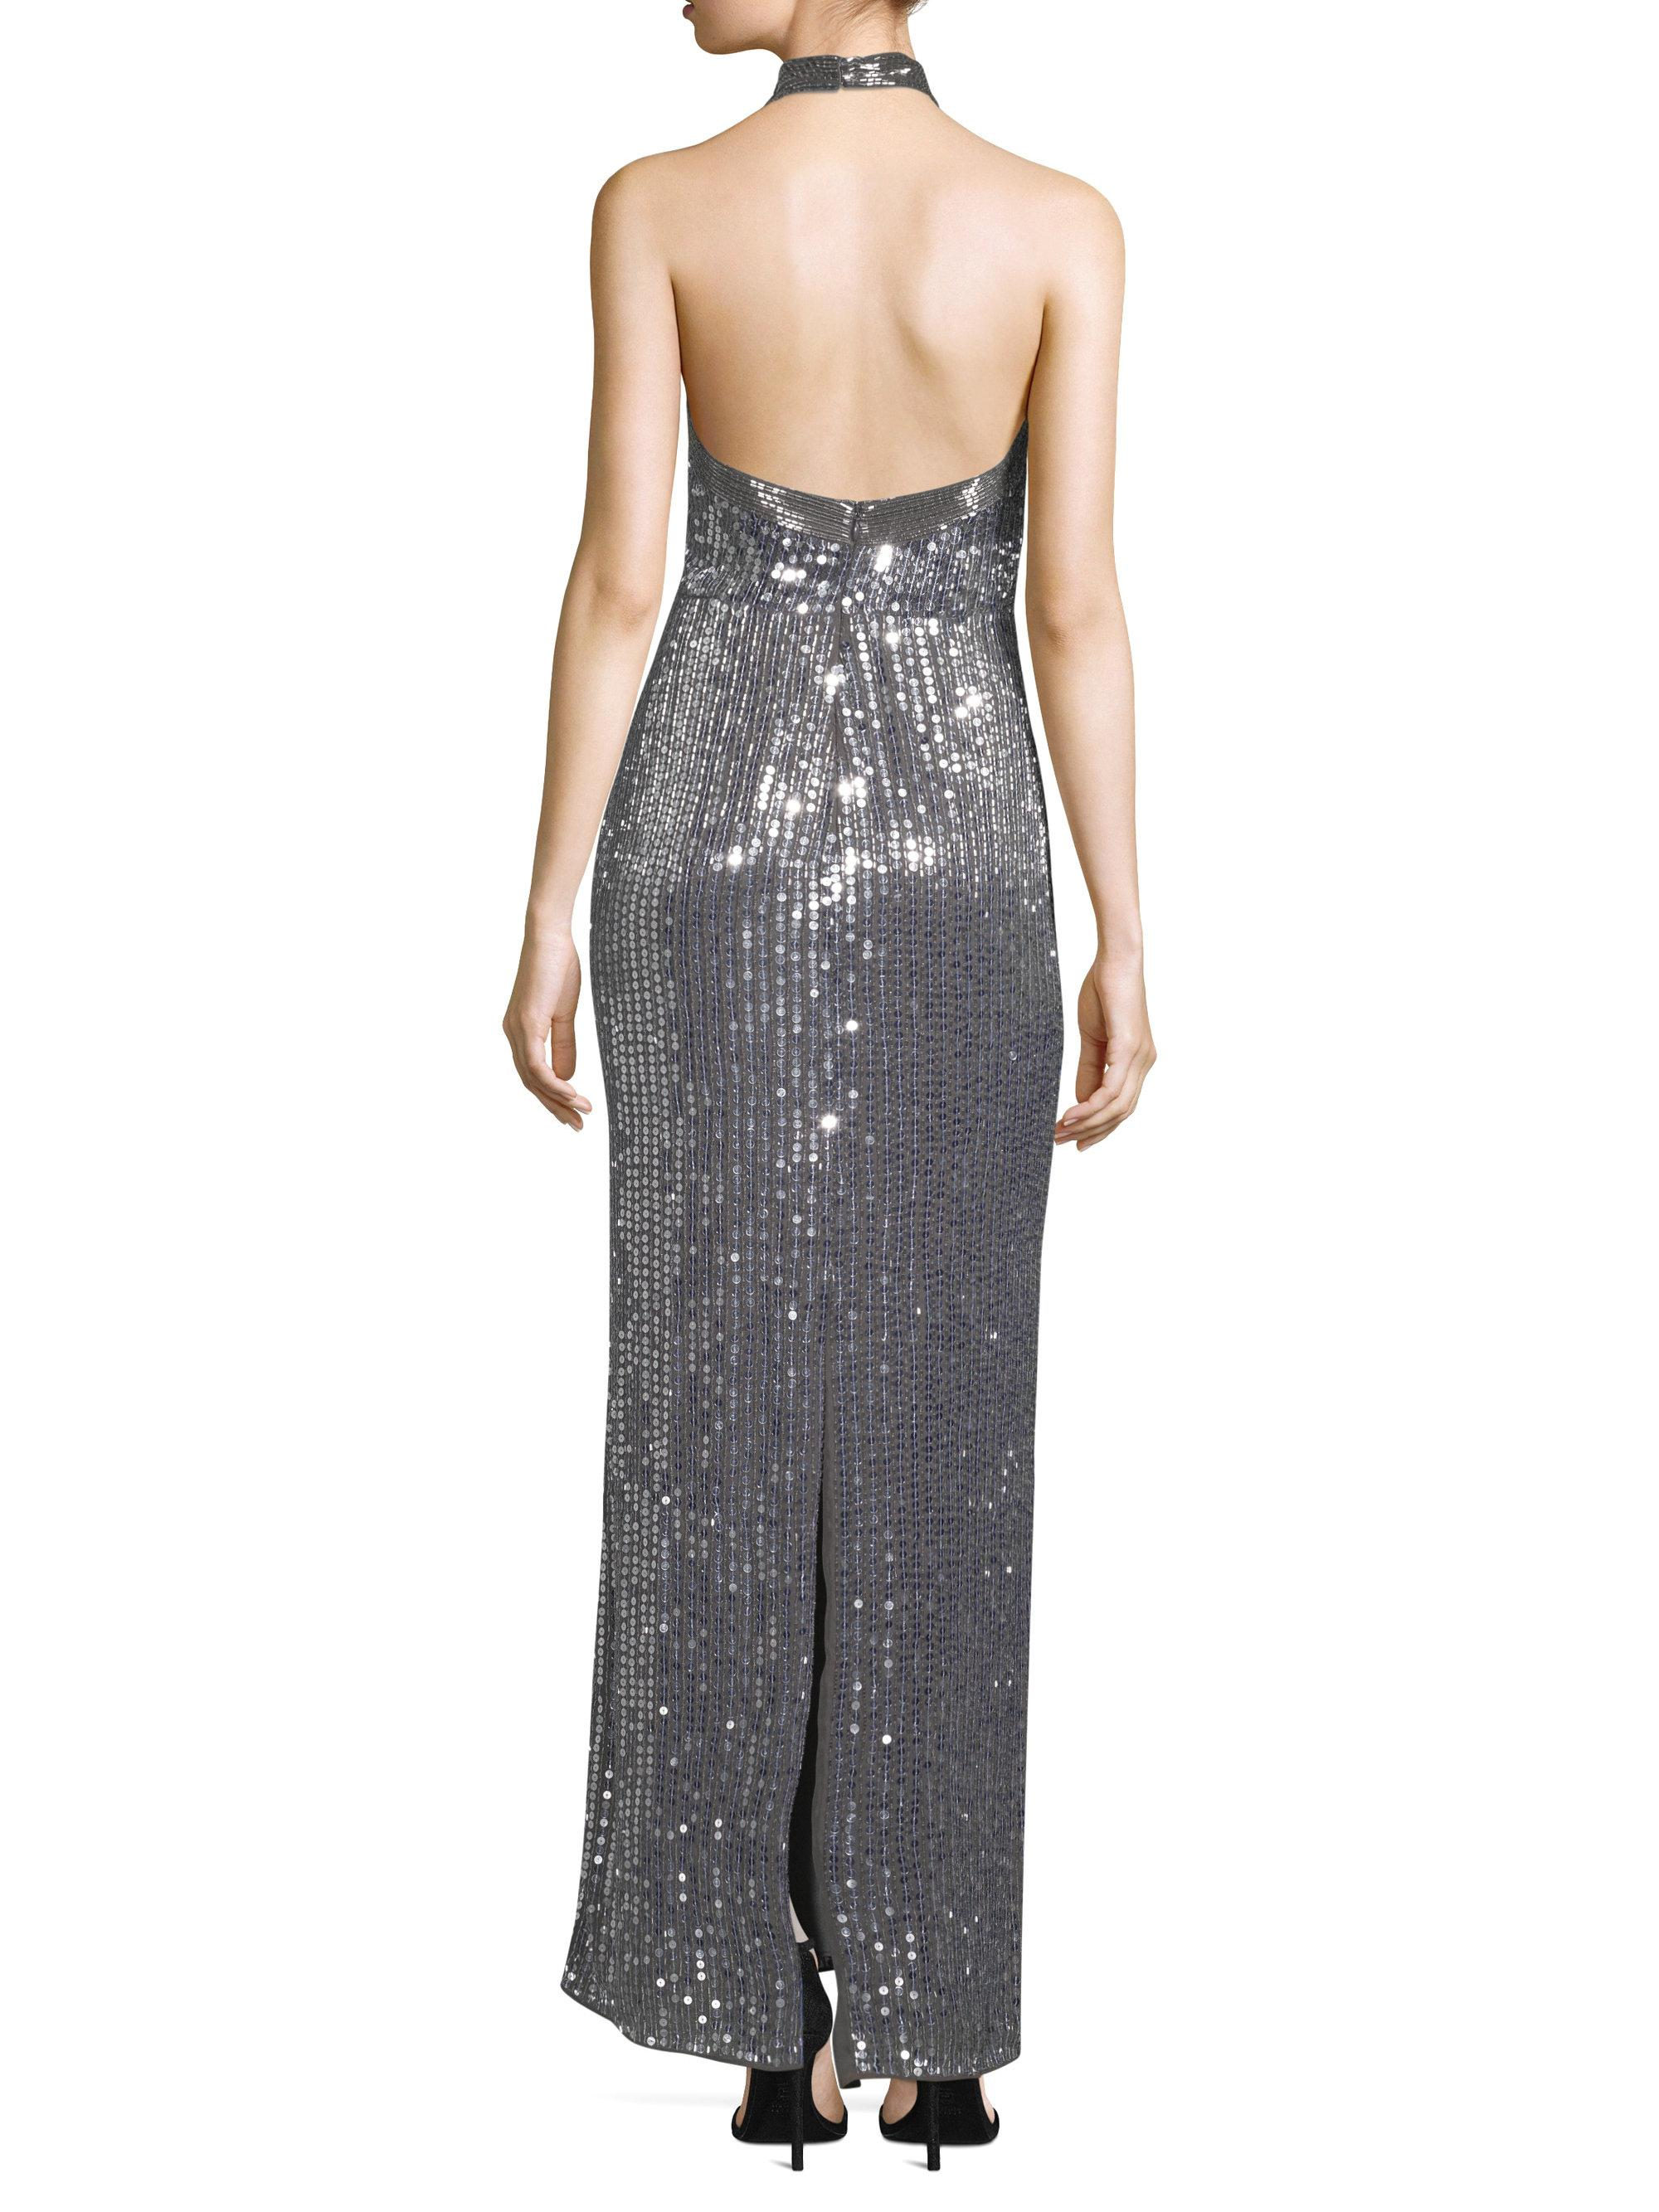 20a245e0cd4 Parker Black Women s Sophie Sequin Gown - Grey - Size 2 in Gray - Lyst